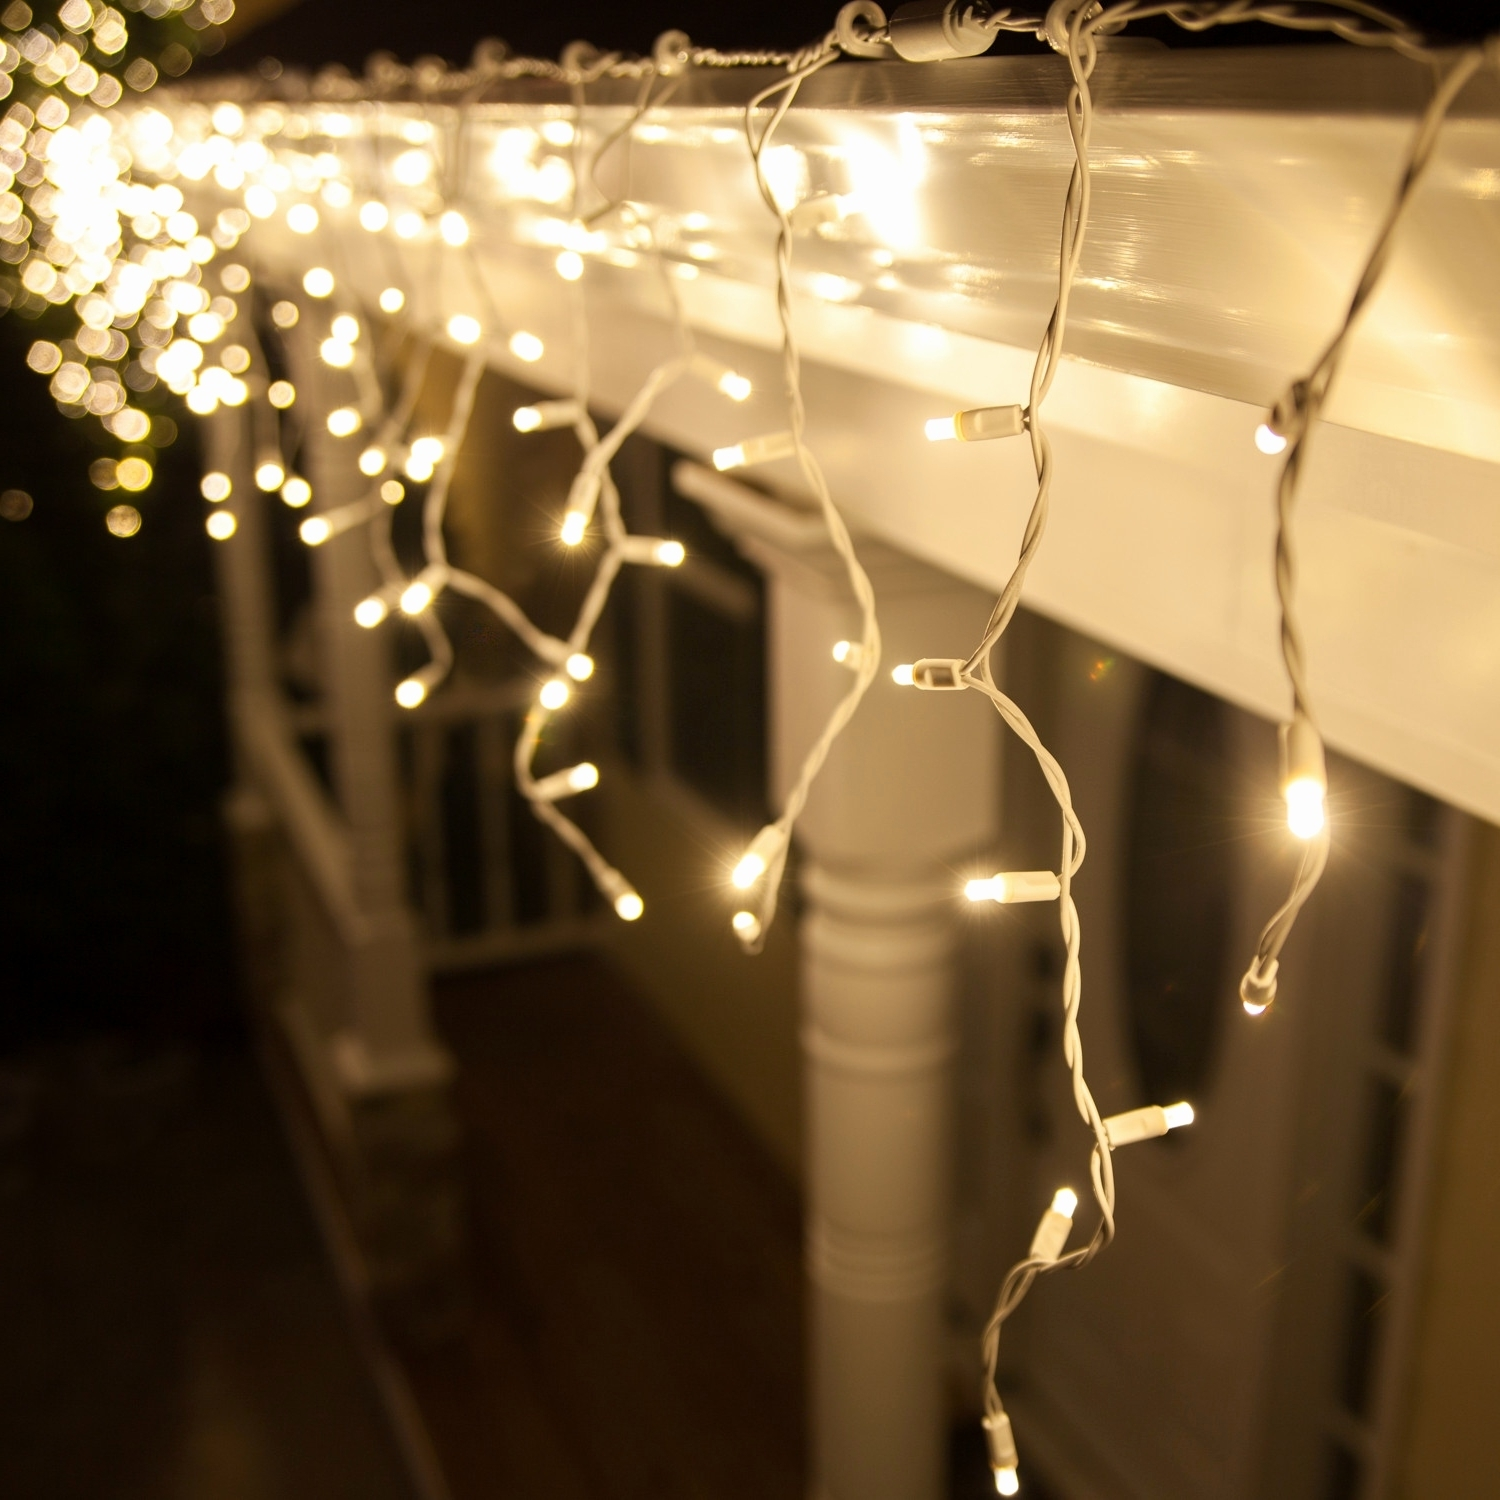 Outdoor Hanging Icicle Lights Pertaining To Most Up To Date Best Of How To Hang Outdoor Christmas Lights Images – Home Design (View 20 of 20)